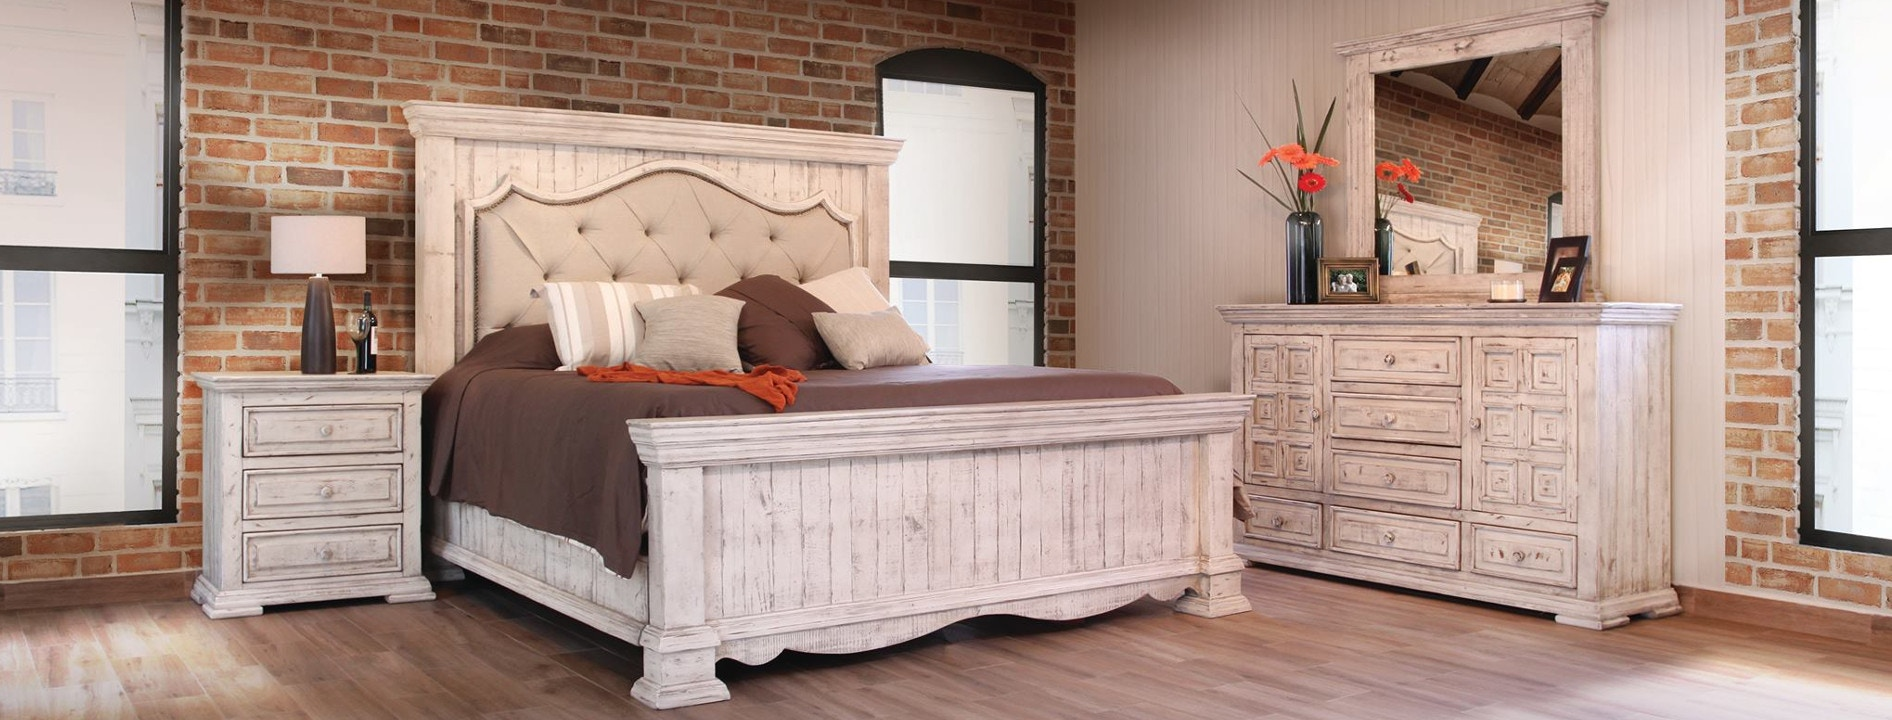 American Factory Direct Furniture | All About Price...All ...